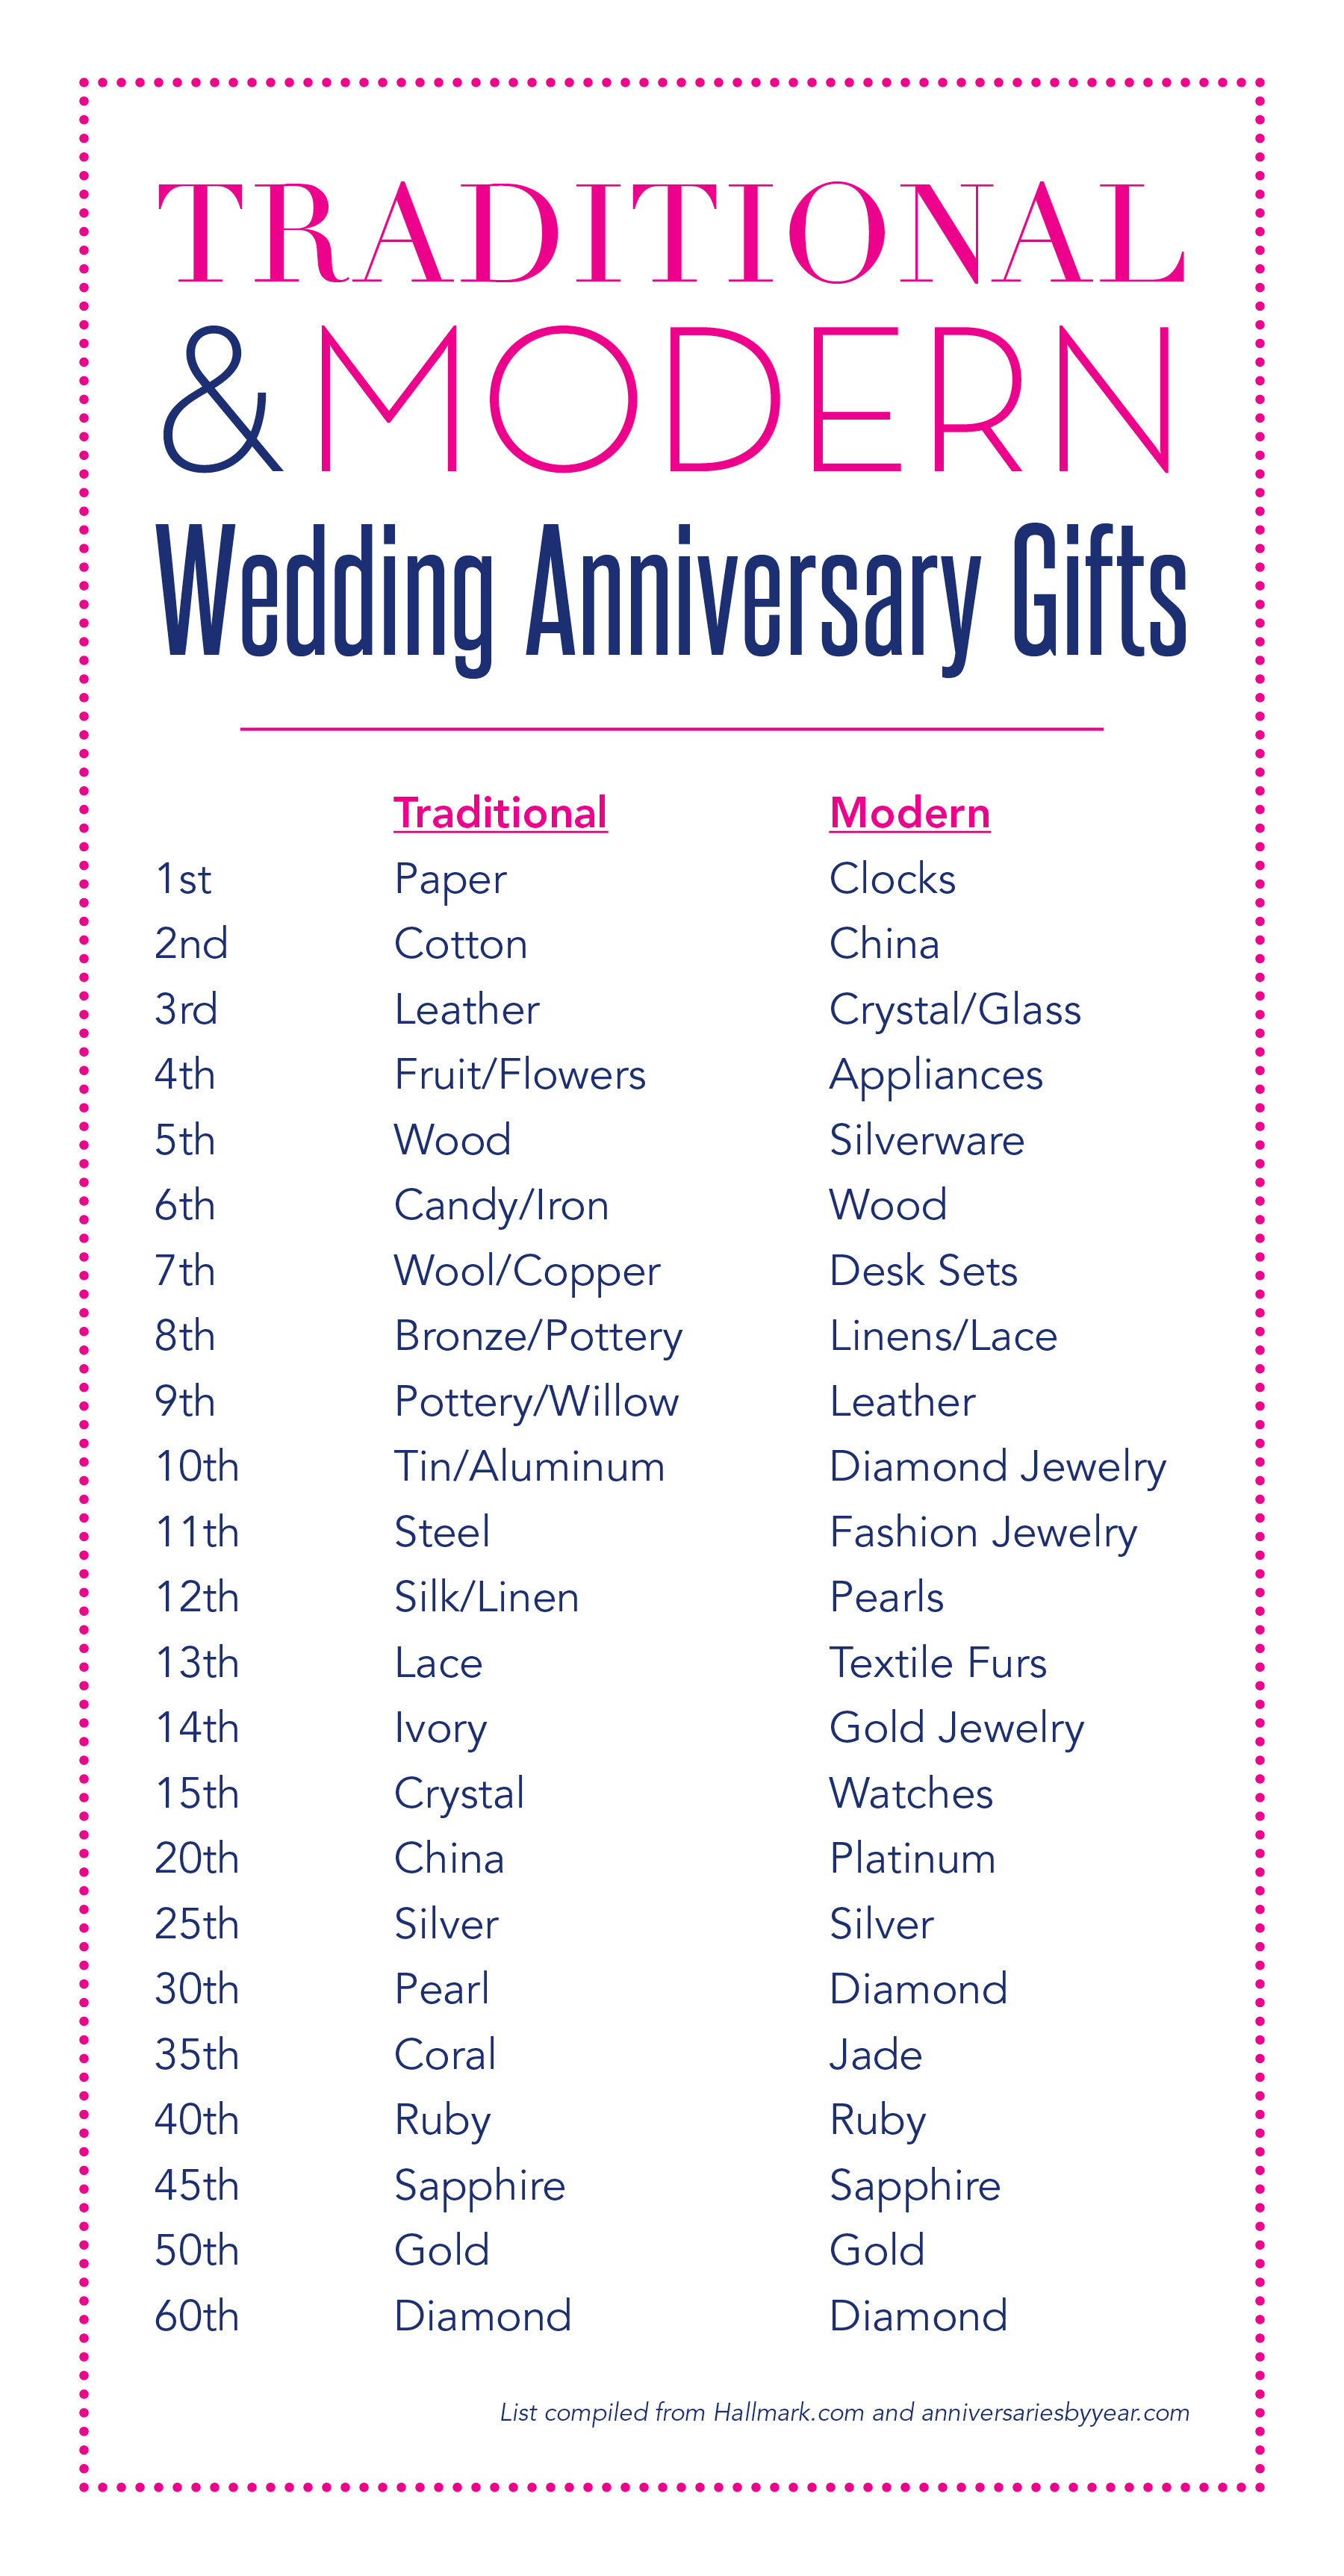 Wedding Gift List Sites : wedding anniversary gifts (traditional & modern)